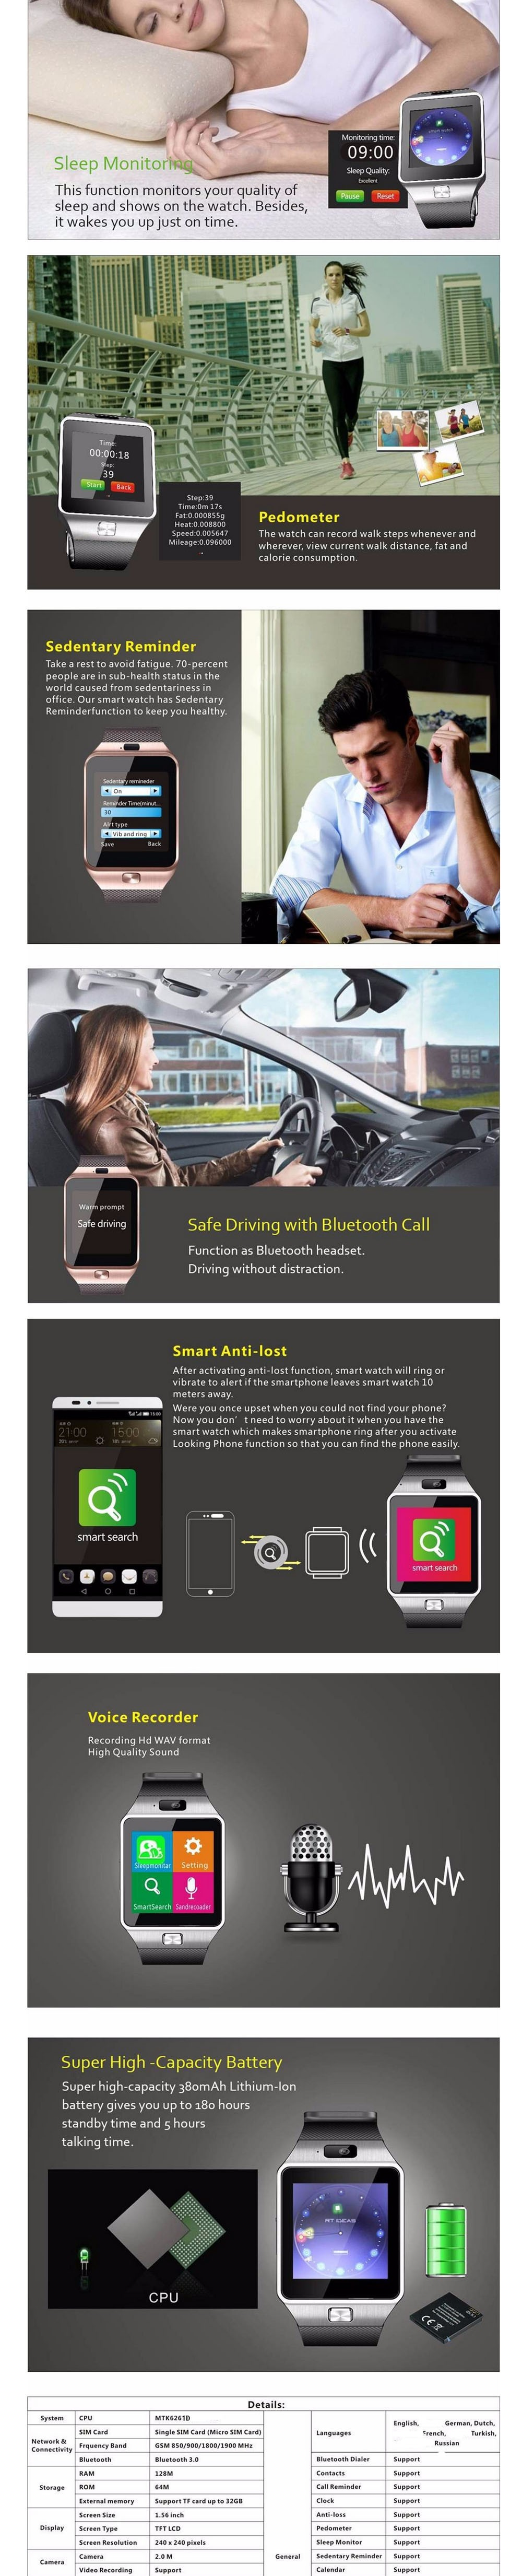 Newest Bluetooth Smartwatch NK01 Smart Watch for iPhone 4/4S/5/5S Samsung S4/Note 3 HTC Android Phone Smartphones